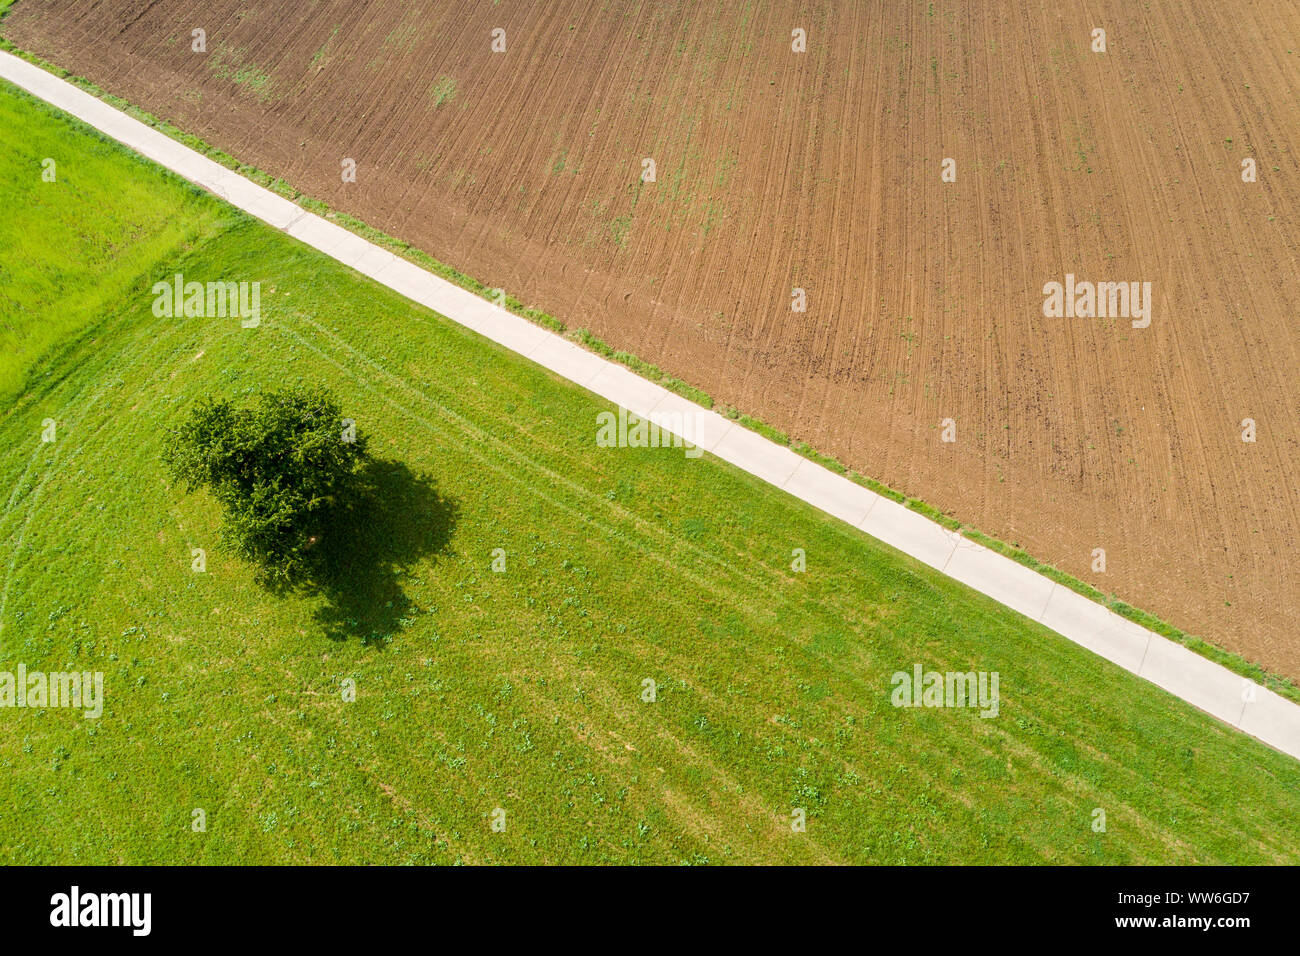 Aerial photograph, agricultural area, Schurwald, Ostalb, Baden Württemberg, Germany Stock Photo